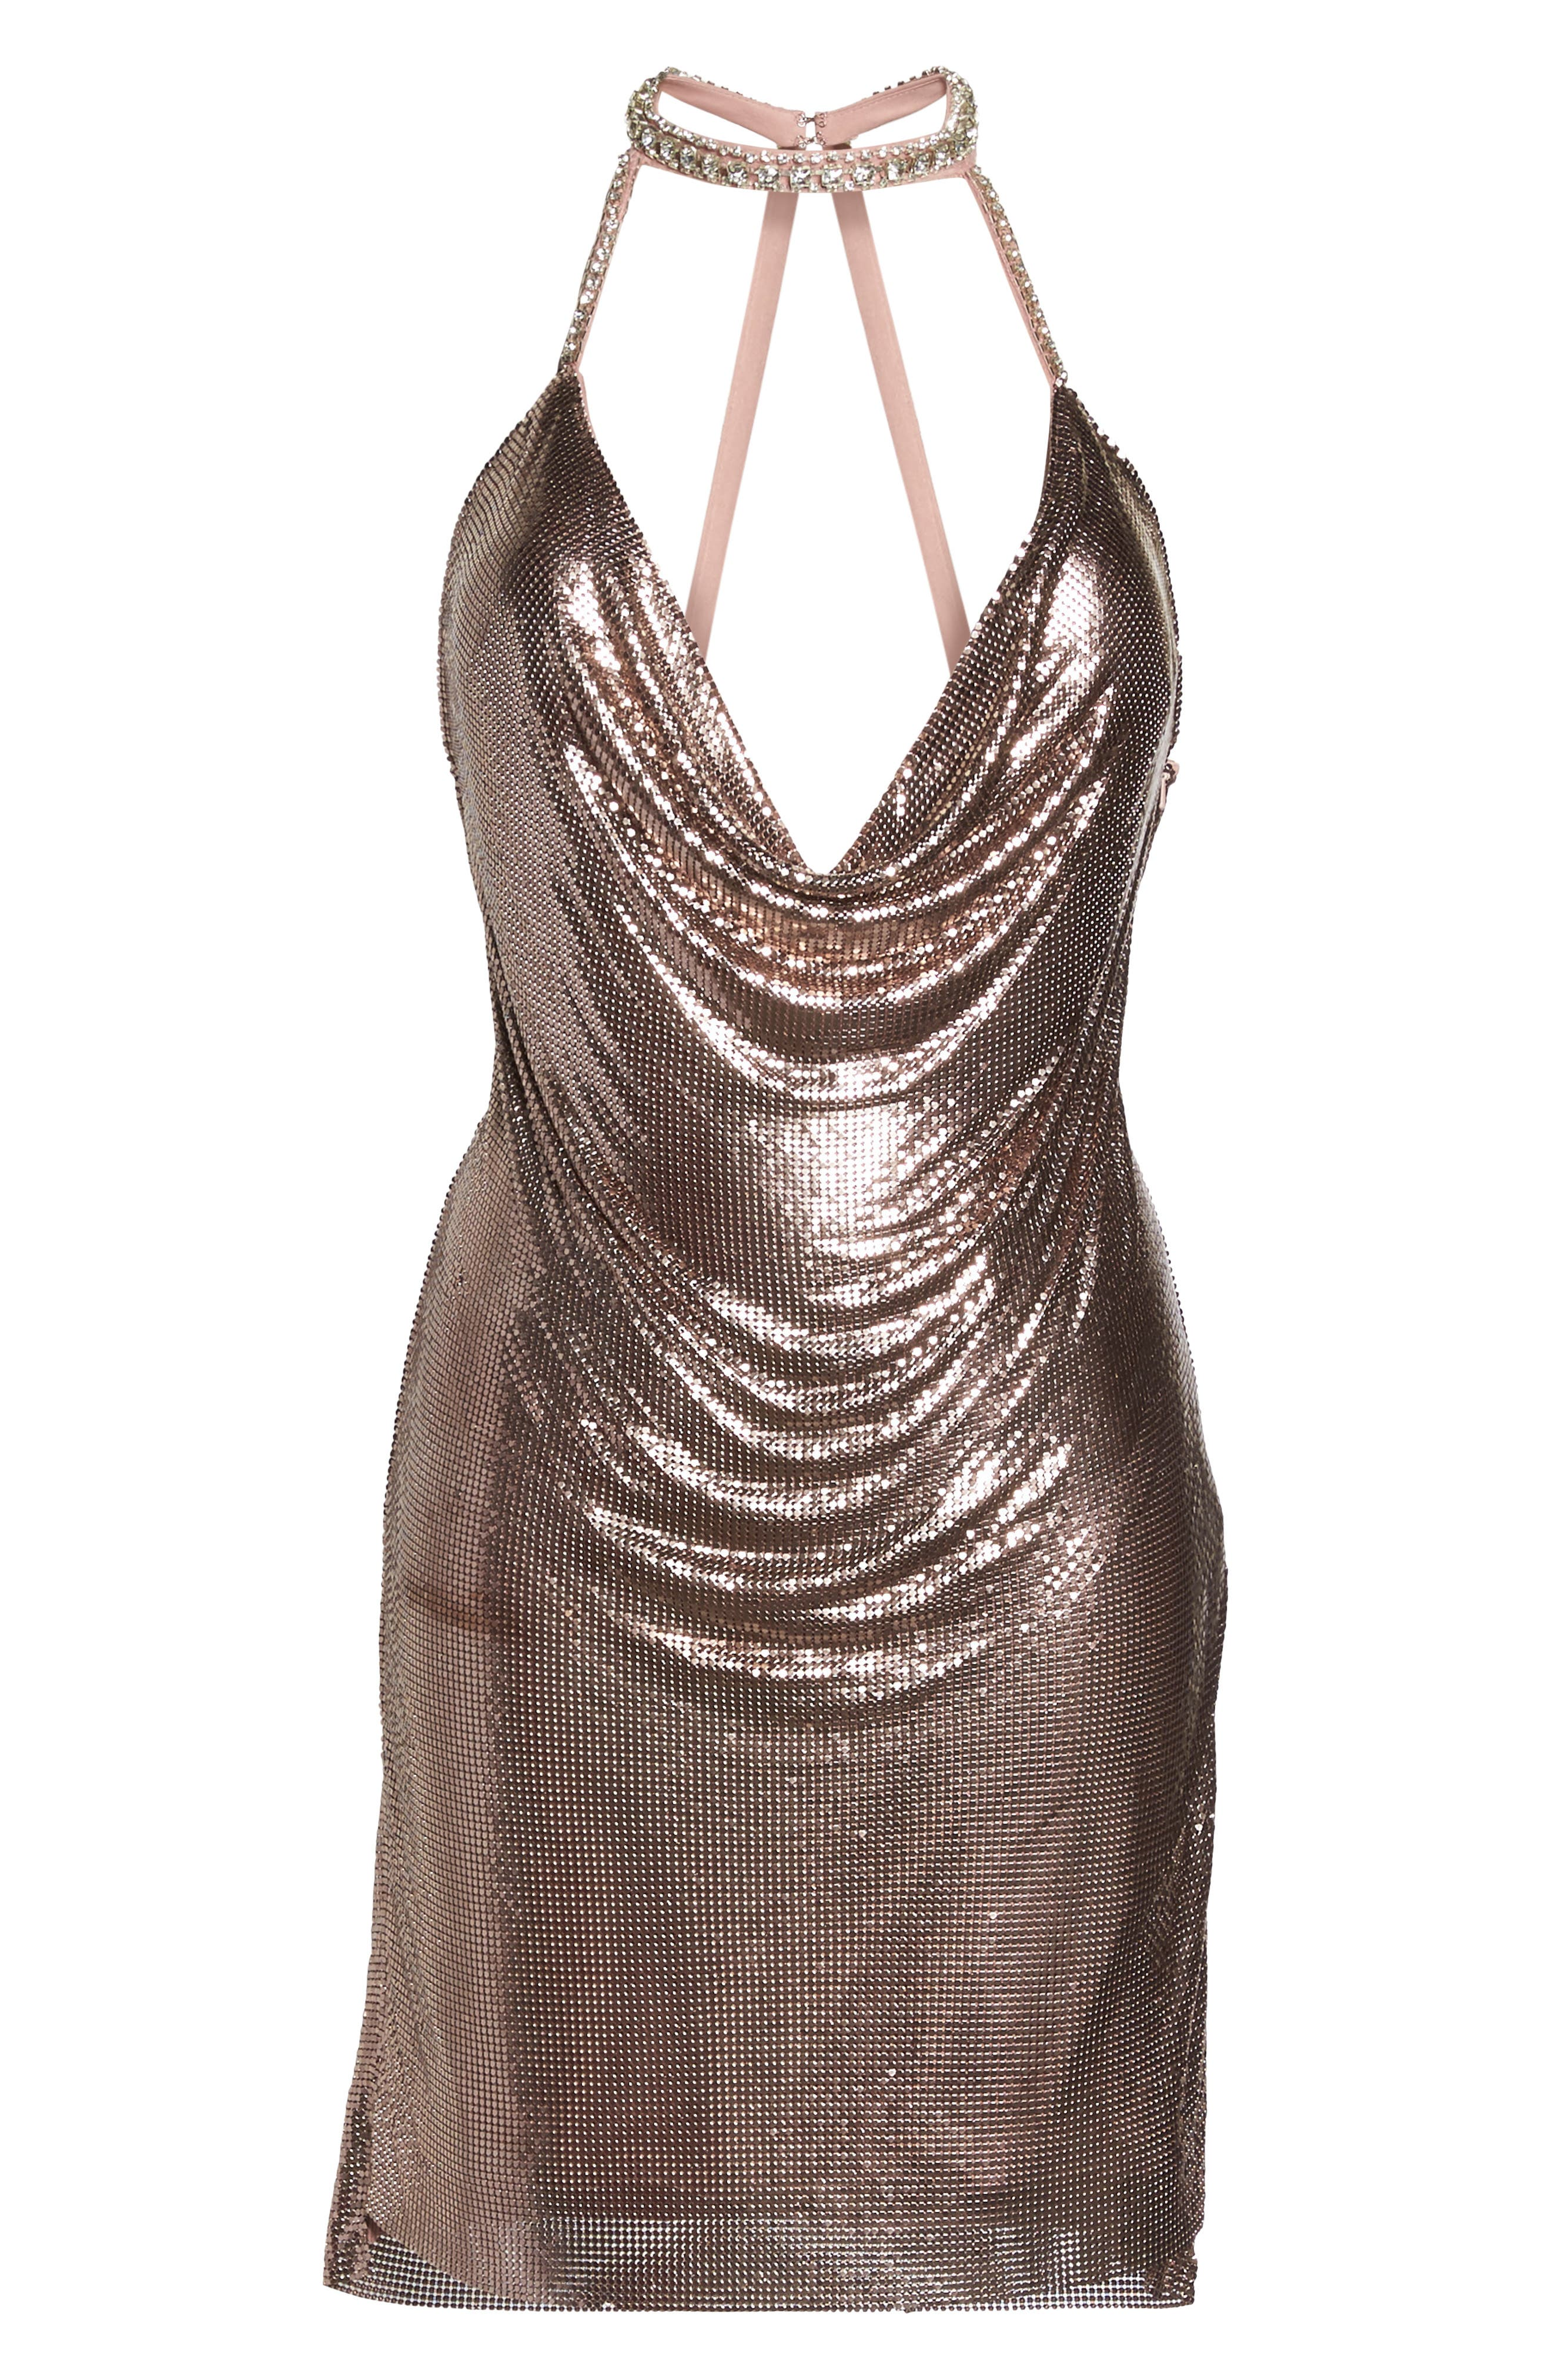 Embellished Halter Neck Dress,                             Alternate thumbnail 6, color,                             Blush